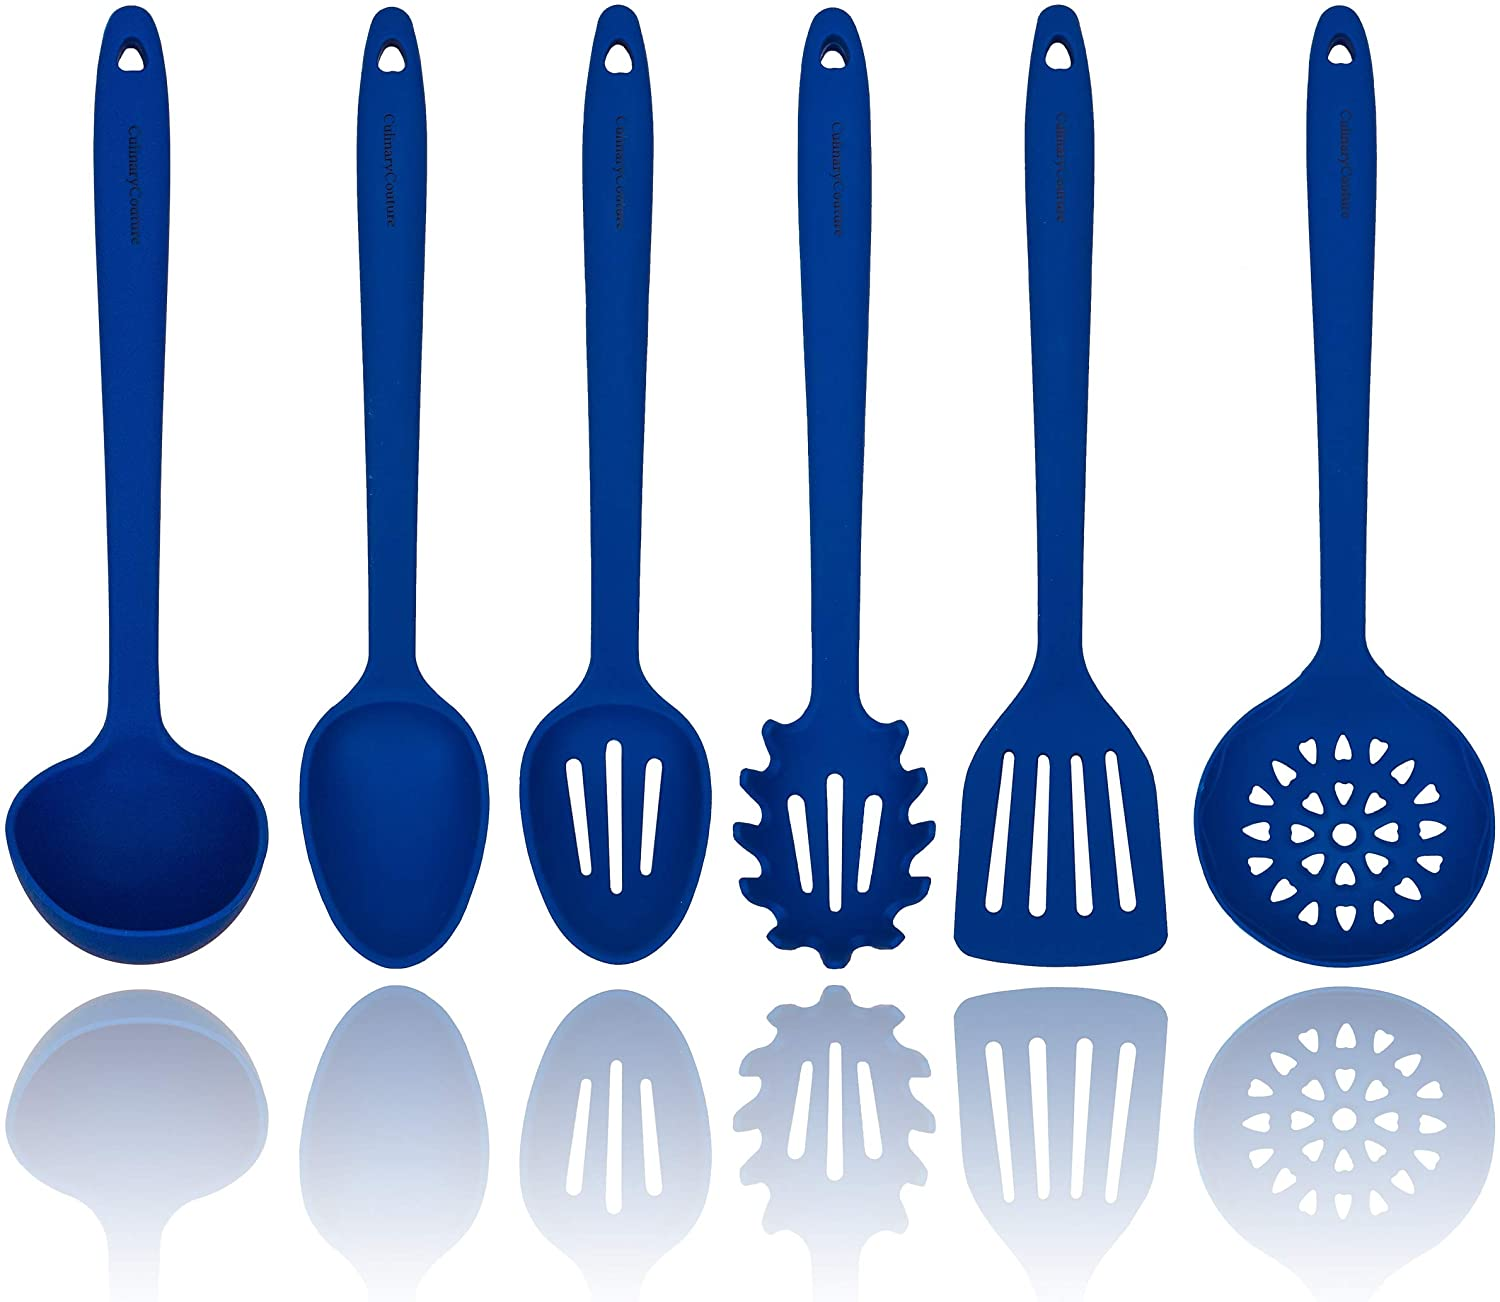 Amazon Com Blue Silicone Cooking Utensils Set Sturdy Steel Inner Core Spatula Mixing Slotted Spoon Ladle Pasta Server Drainer Heat Resistant Kitchen Tools Bonus Recipe Ebook Kitchen Dining